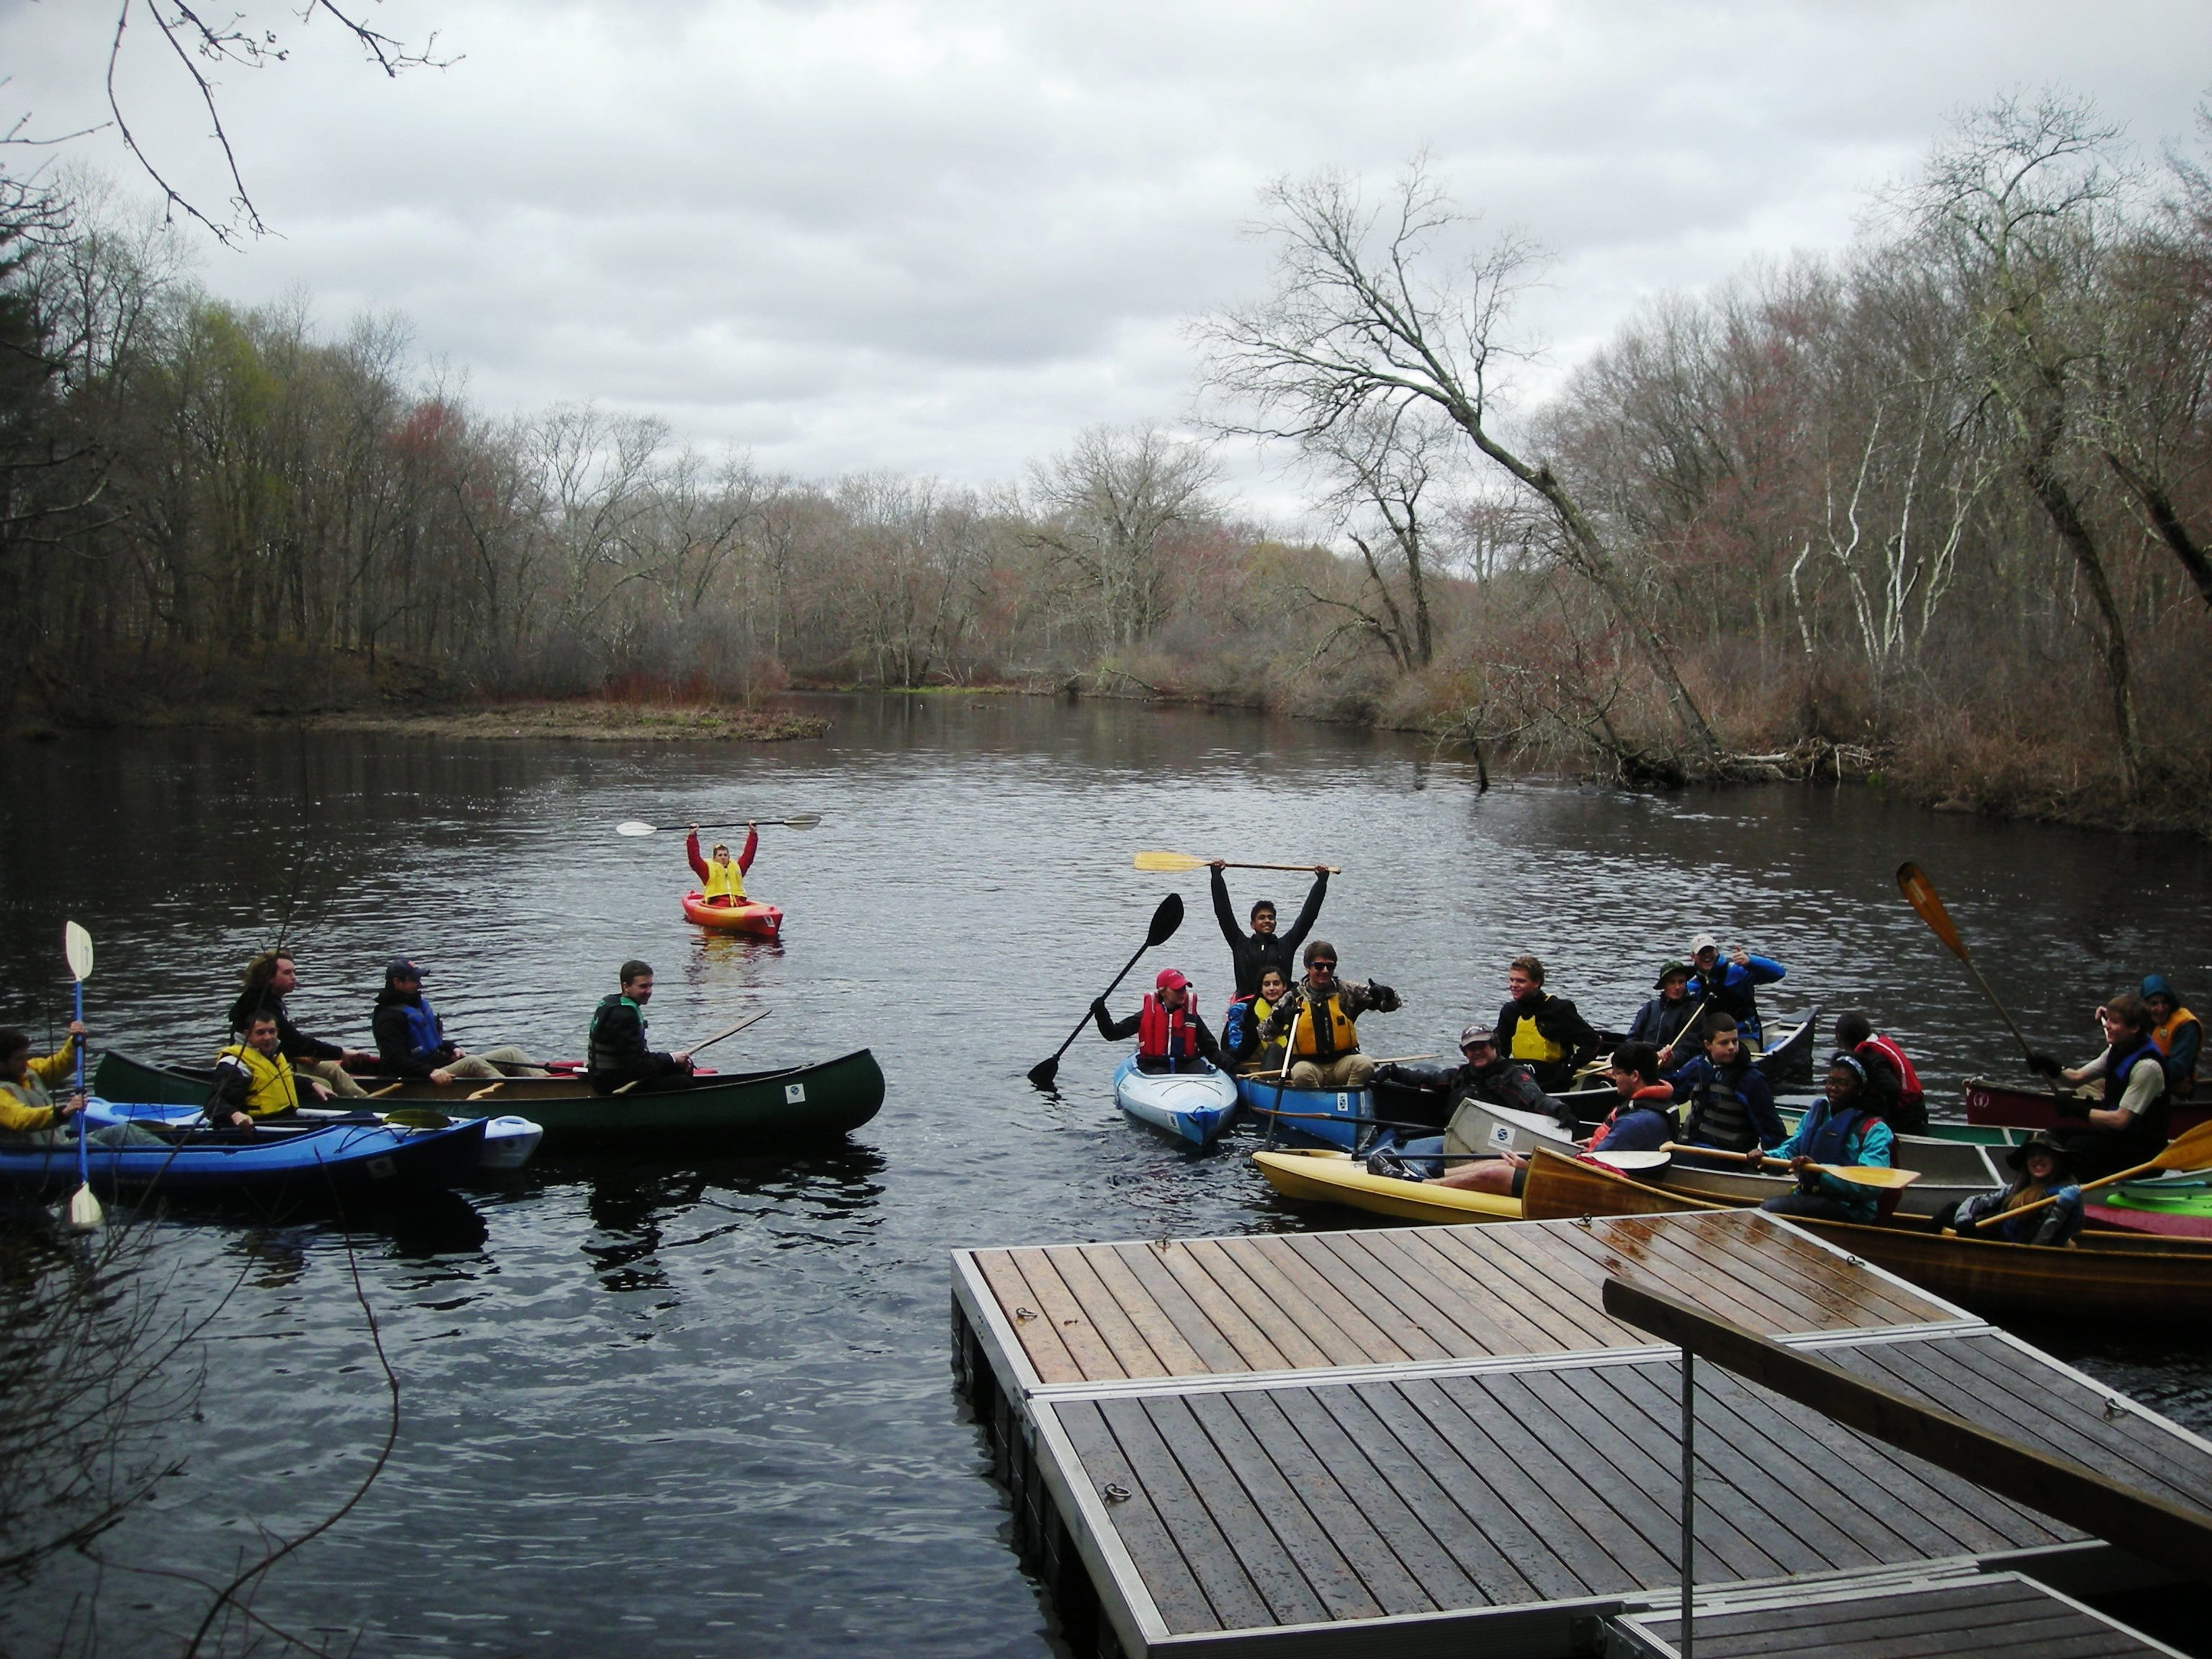 The Ipswich River Seasonal Education And Outreach Apprenticeship Is An Exciting Opportunity To Lead Outdoor Education Paddle Trips For Youth Groups.